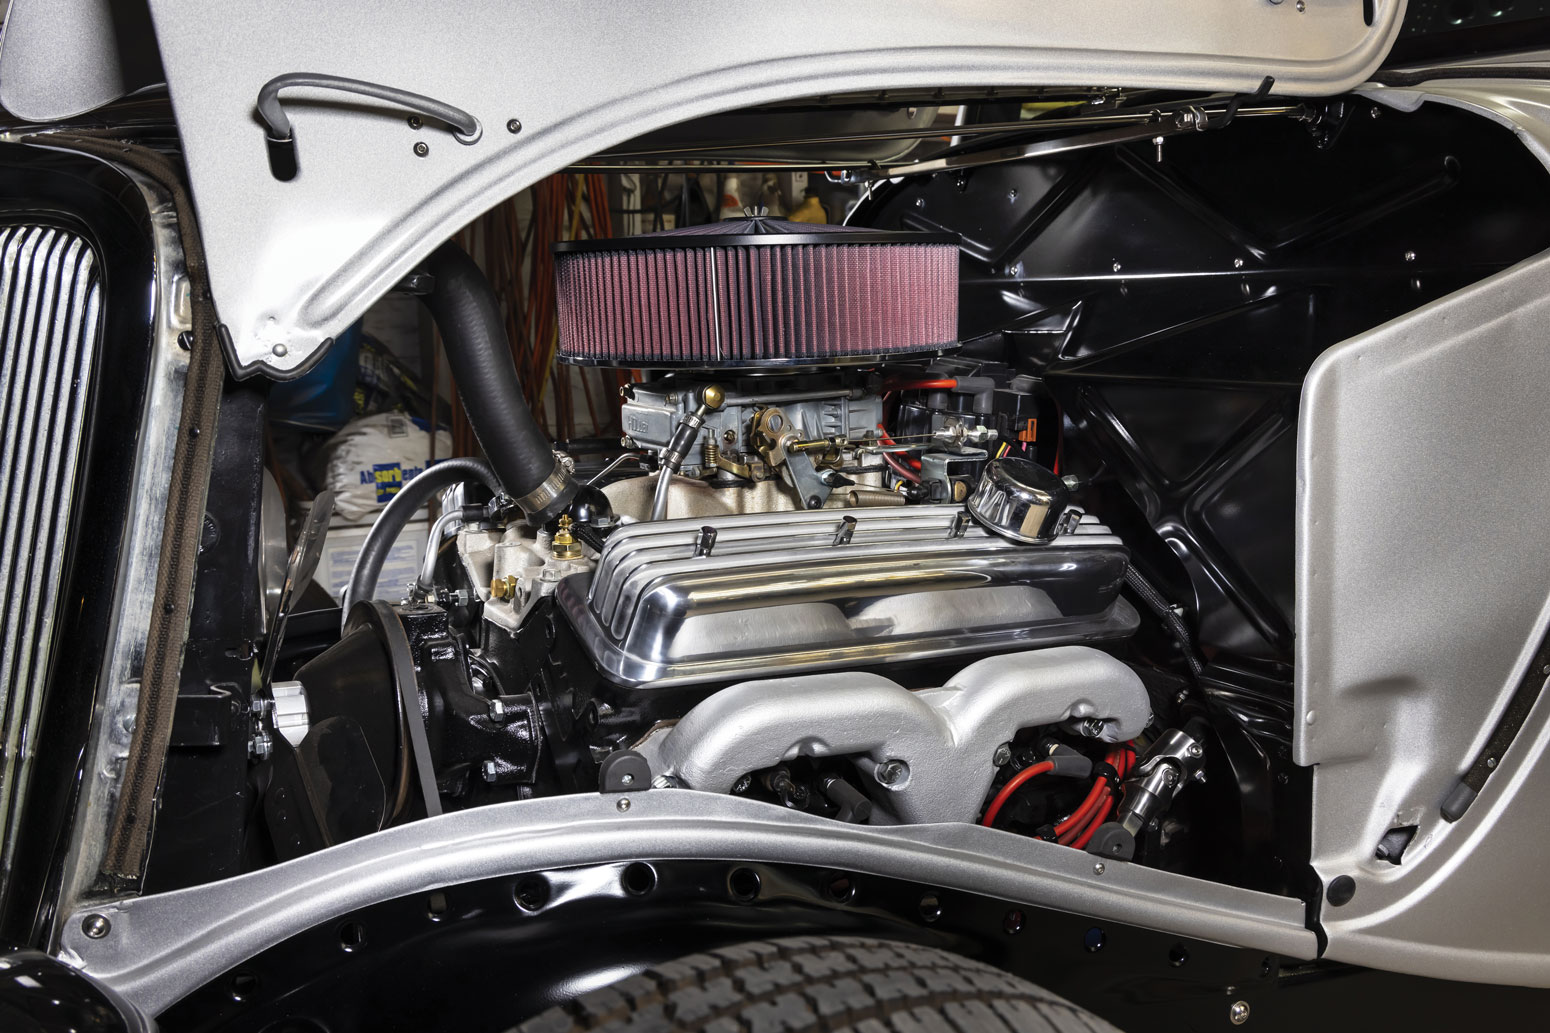 22 1934 Ford Highboy Coupe with a Chevy 350 Crate Engine